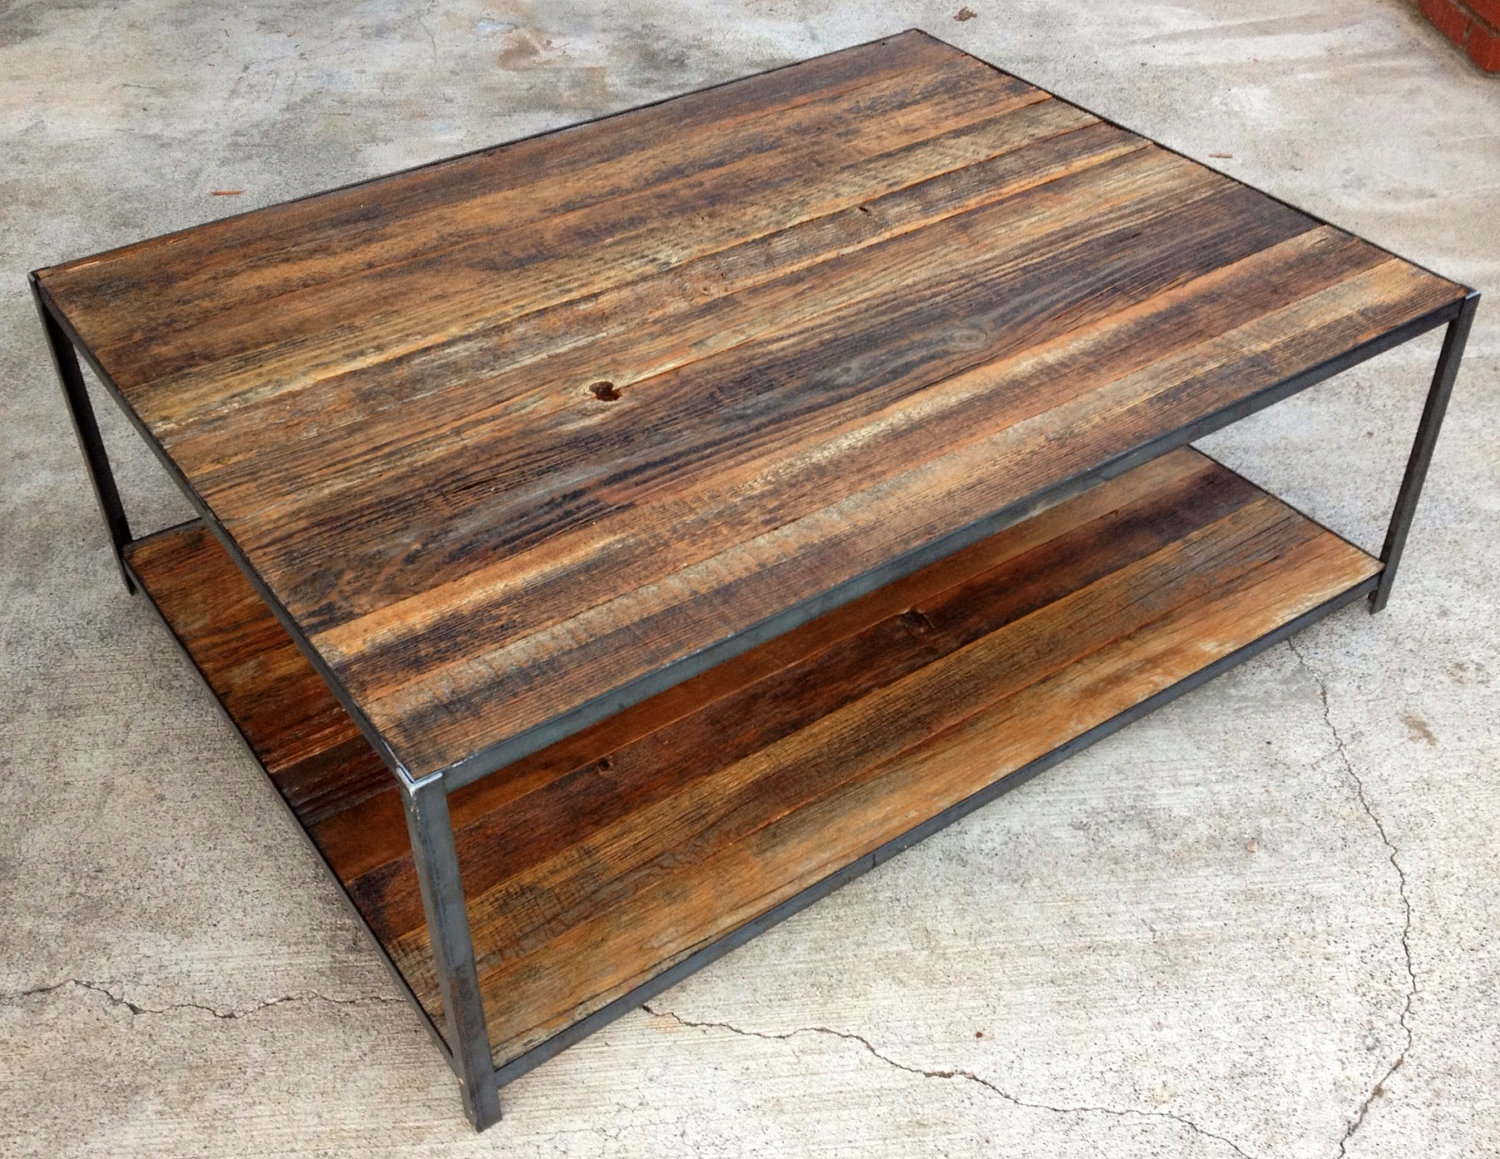 unique wood tables handmade solid brass coffee table ideas reclaimed round end diy small dog house corner accent espresso lakehurst kennel designs lazy boy recliner lounge